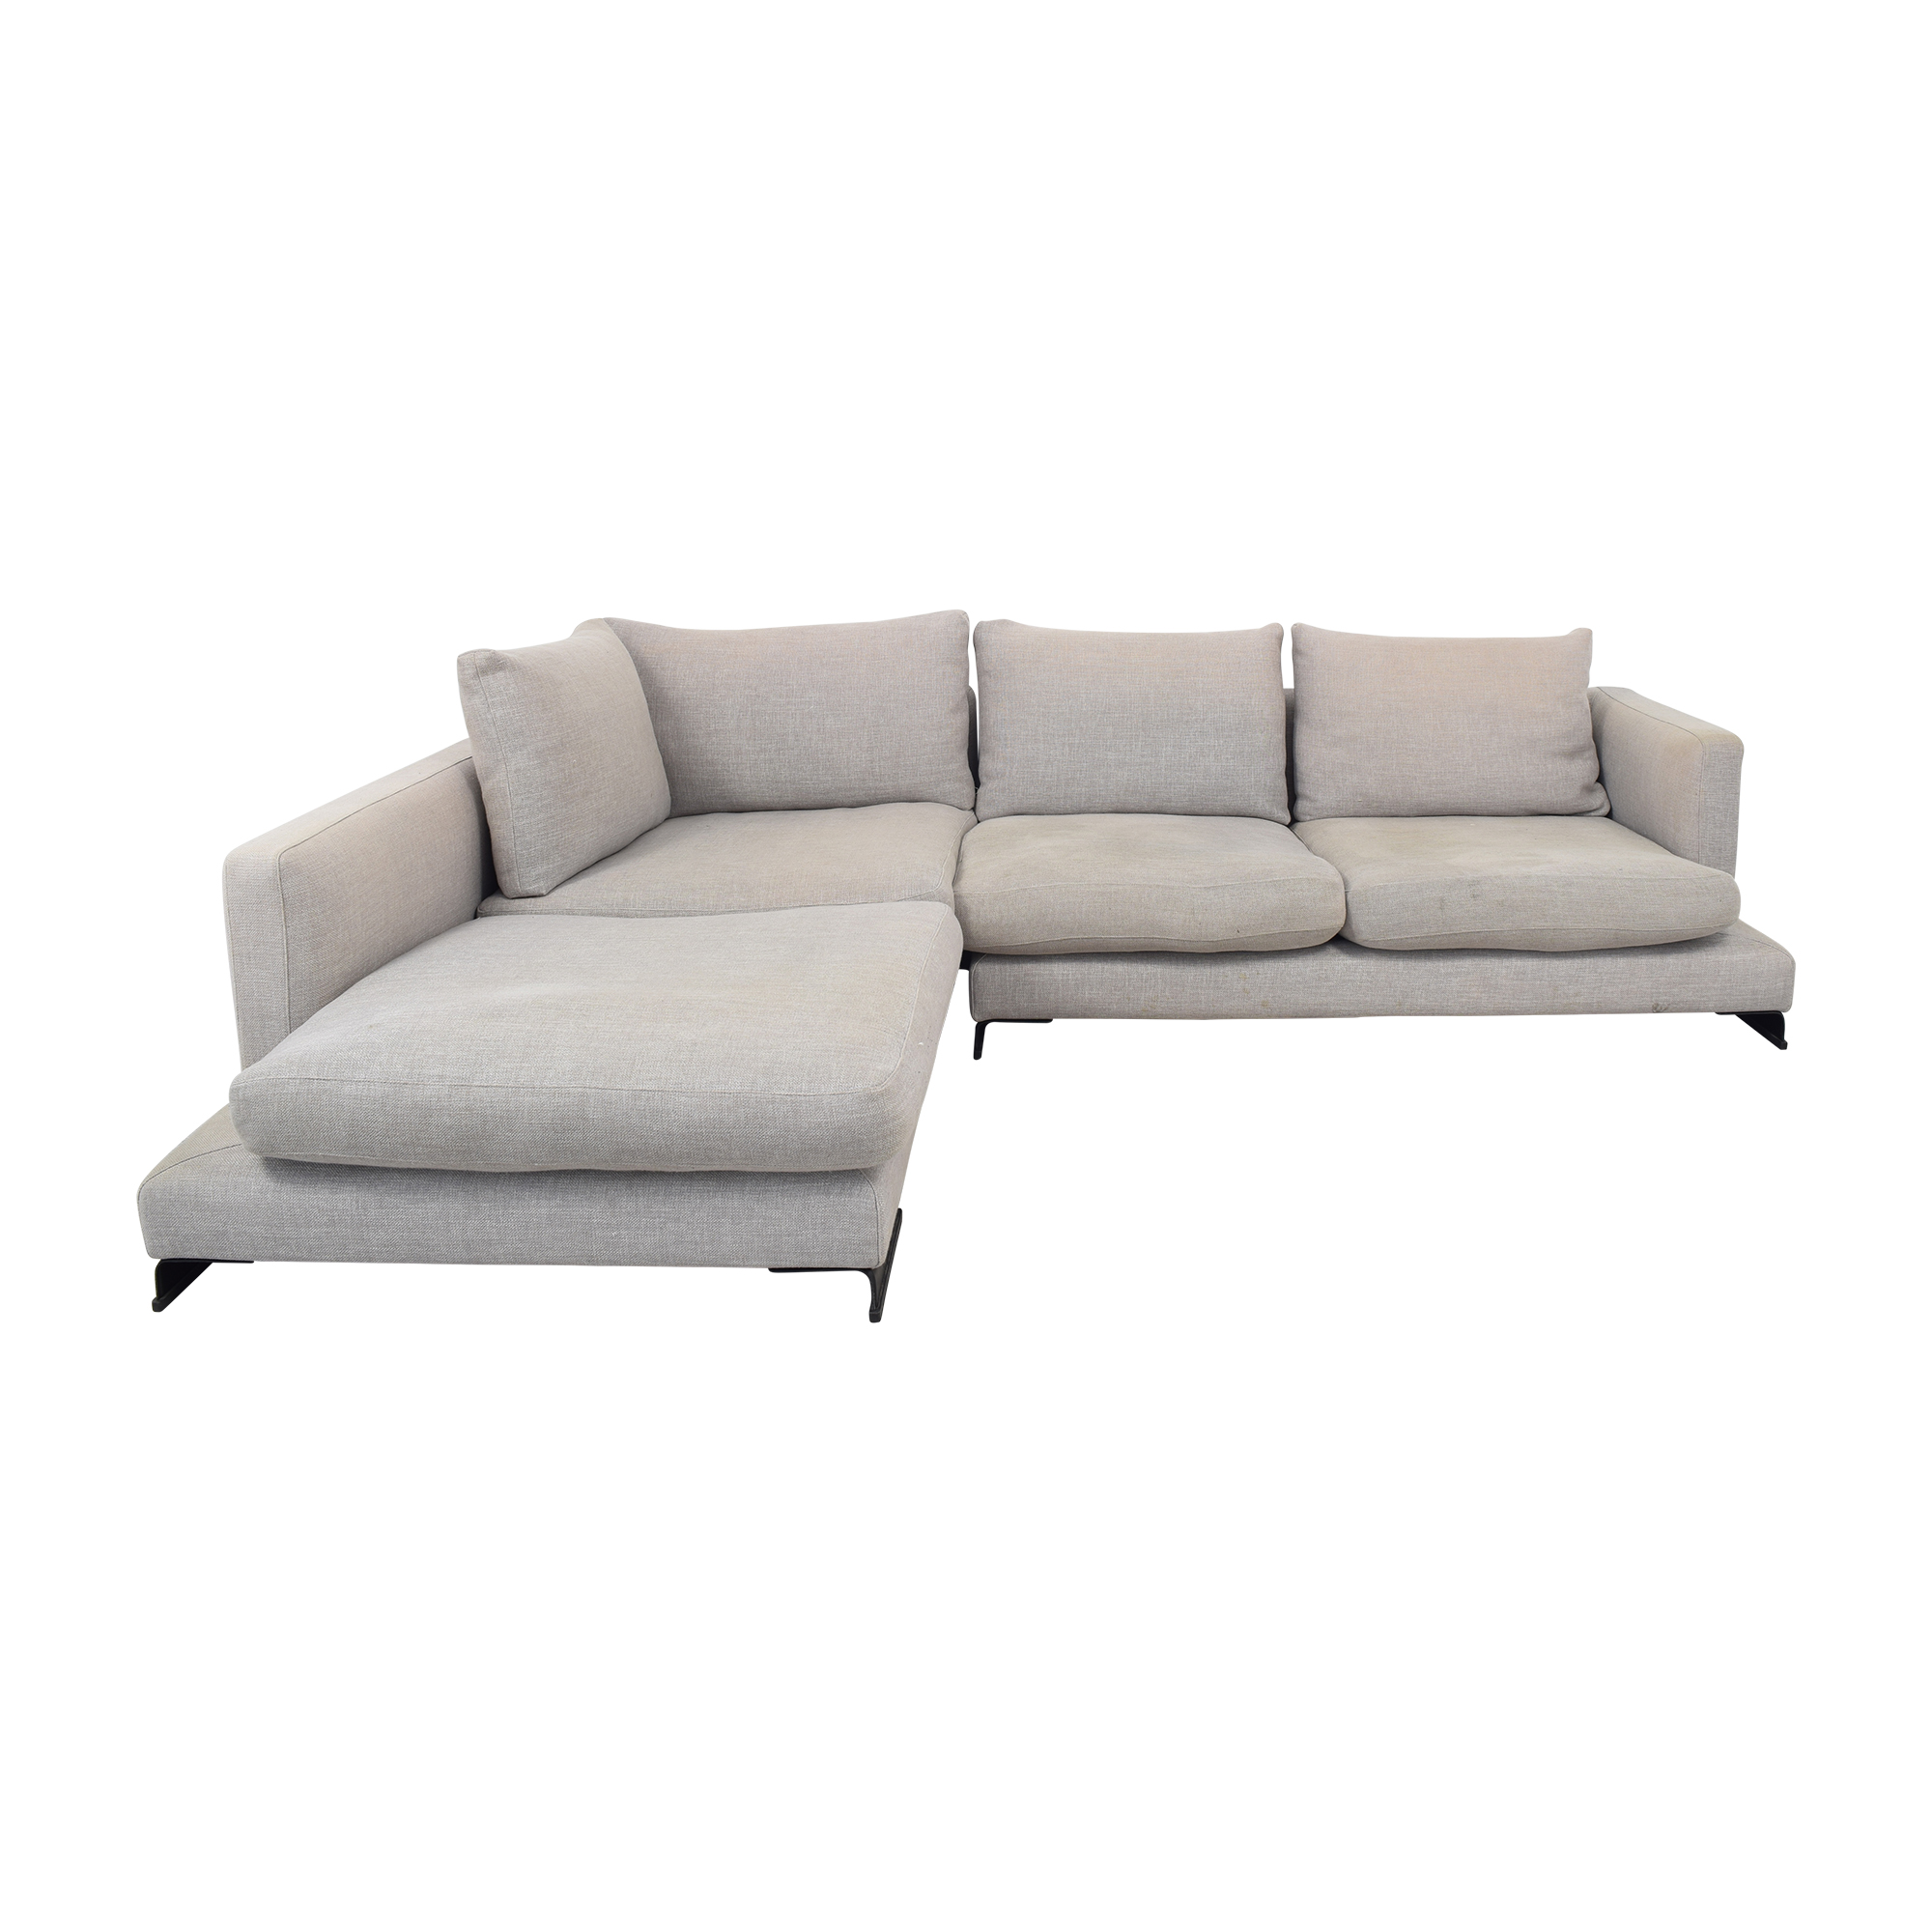 Camerich Camerich Lazy Time Sectional